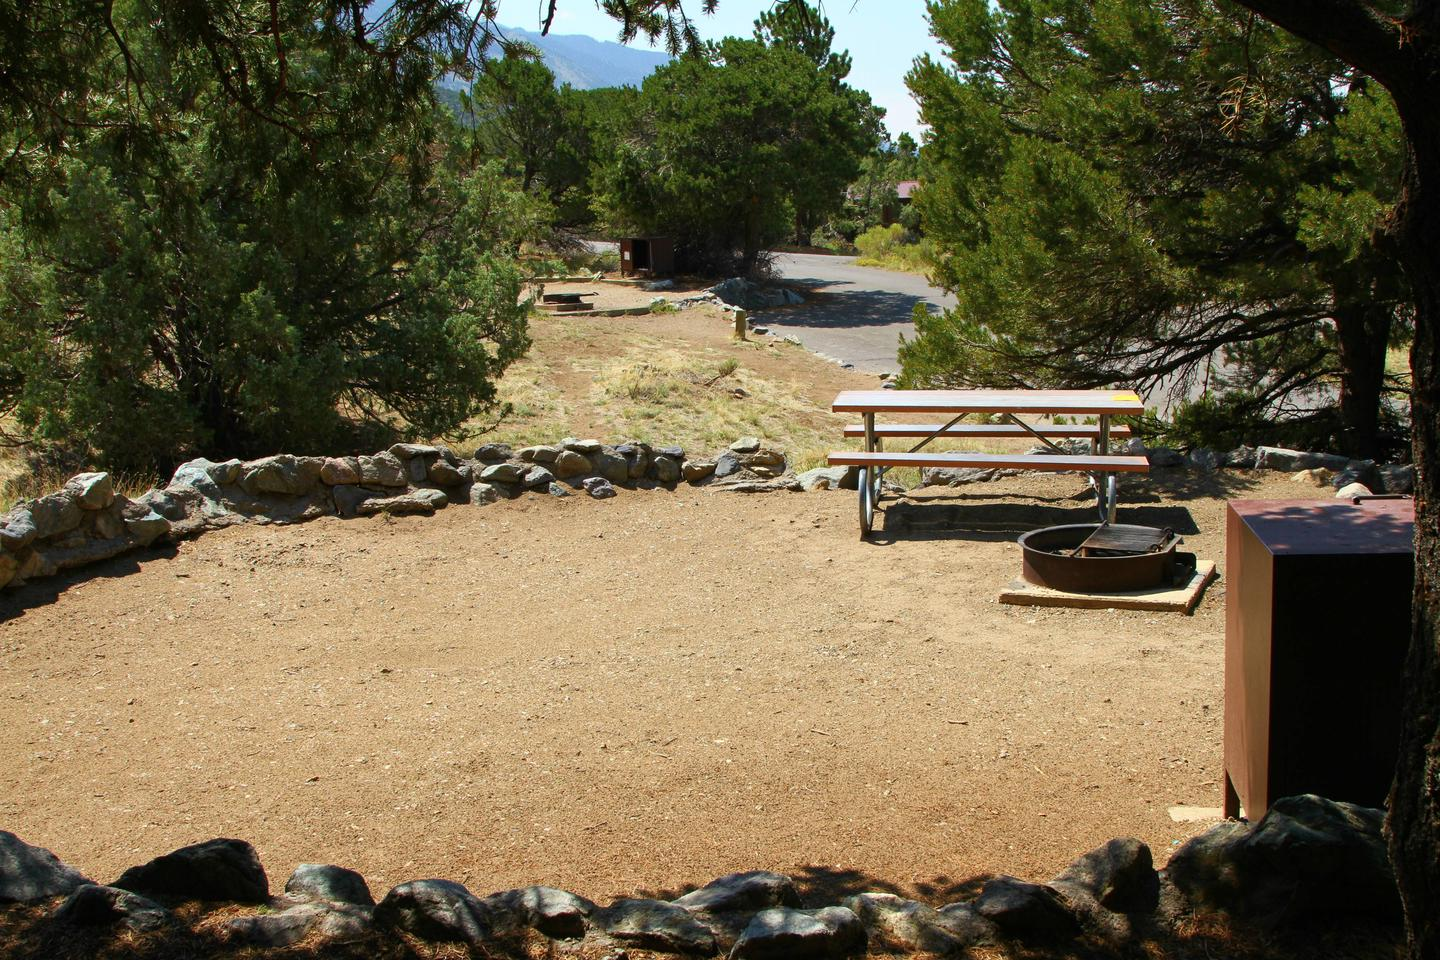 Back view of Site #49 tent pad, bear box, fire ring, and picnic table. Site #47 can be seen in background.Site #49, Pinon Flats Campground